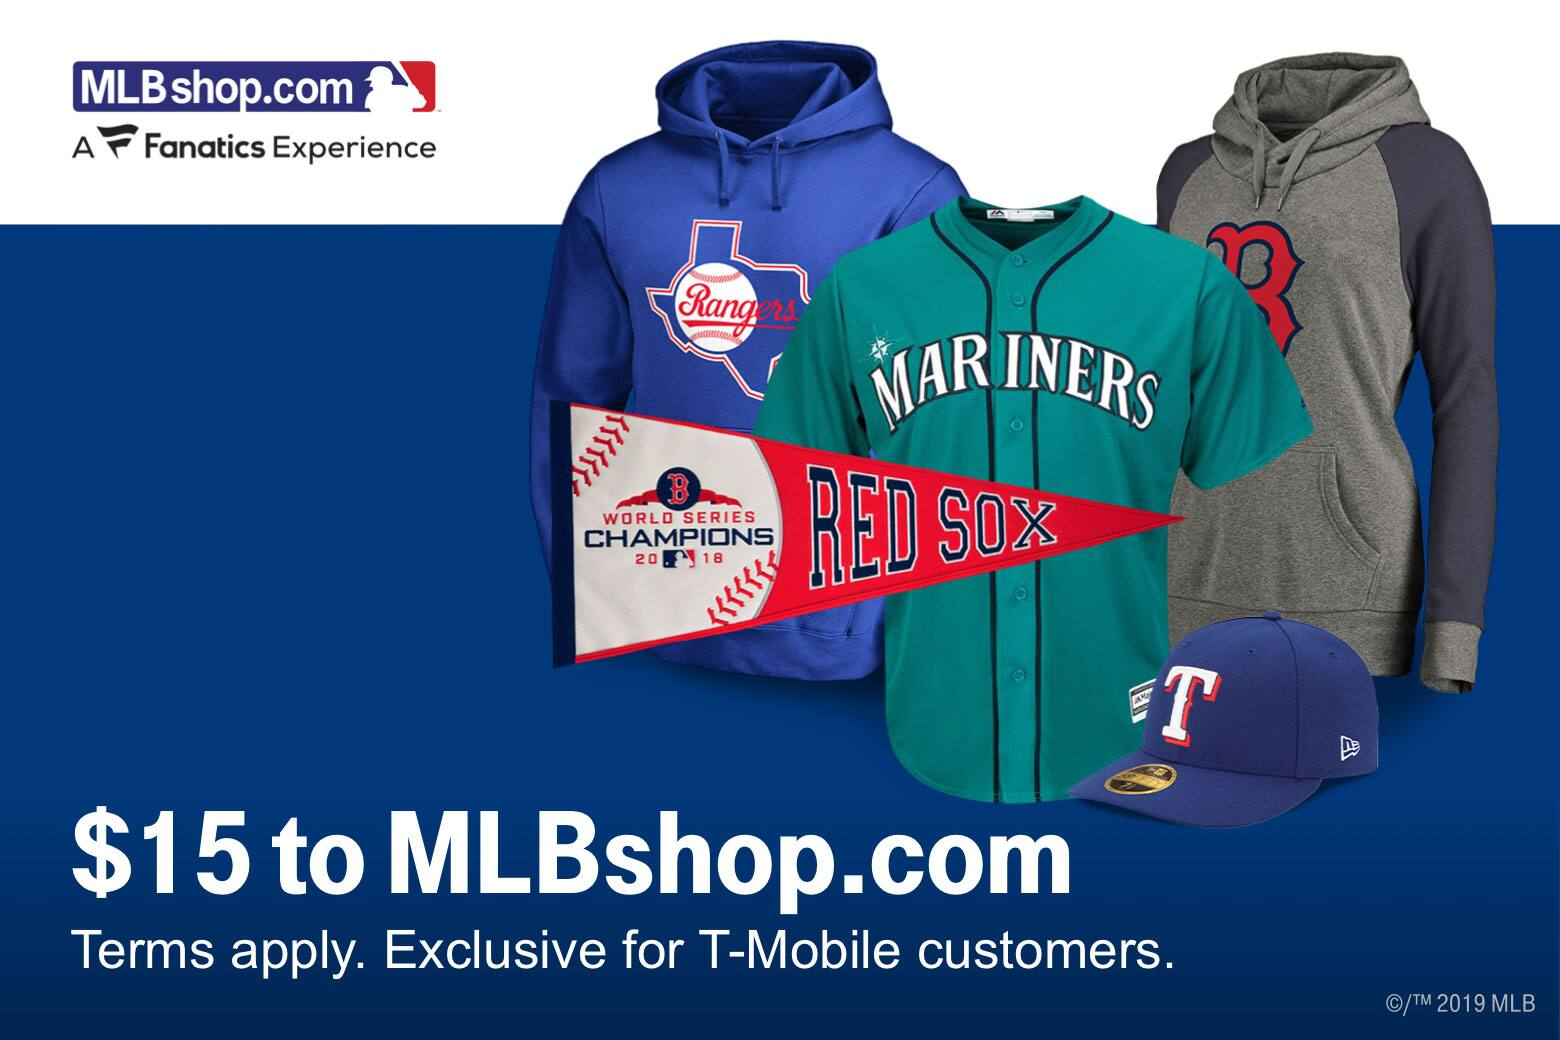 d693ea1b4 T-Mobile Customers (03/12): $15 off MLBshop, Rover $10 Credit, Shell 10  cents off per gallon, Taco Bell Free Taco